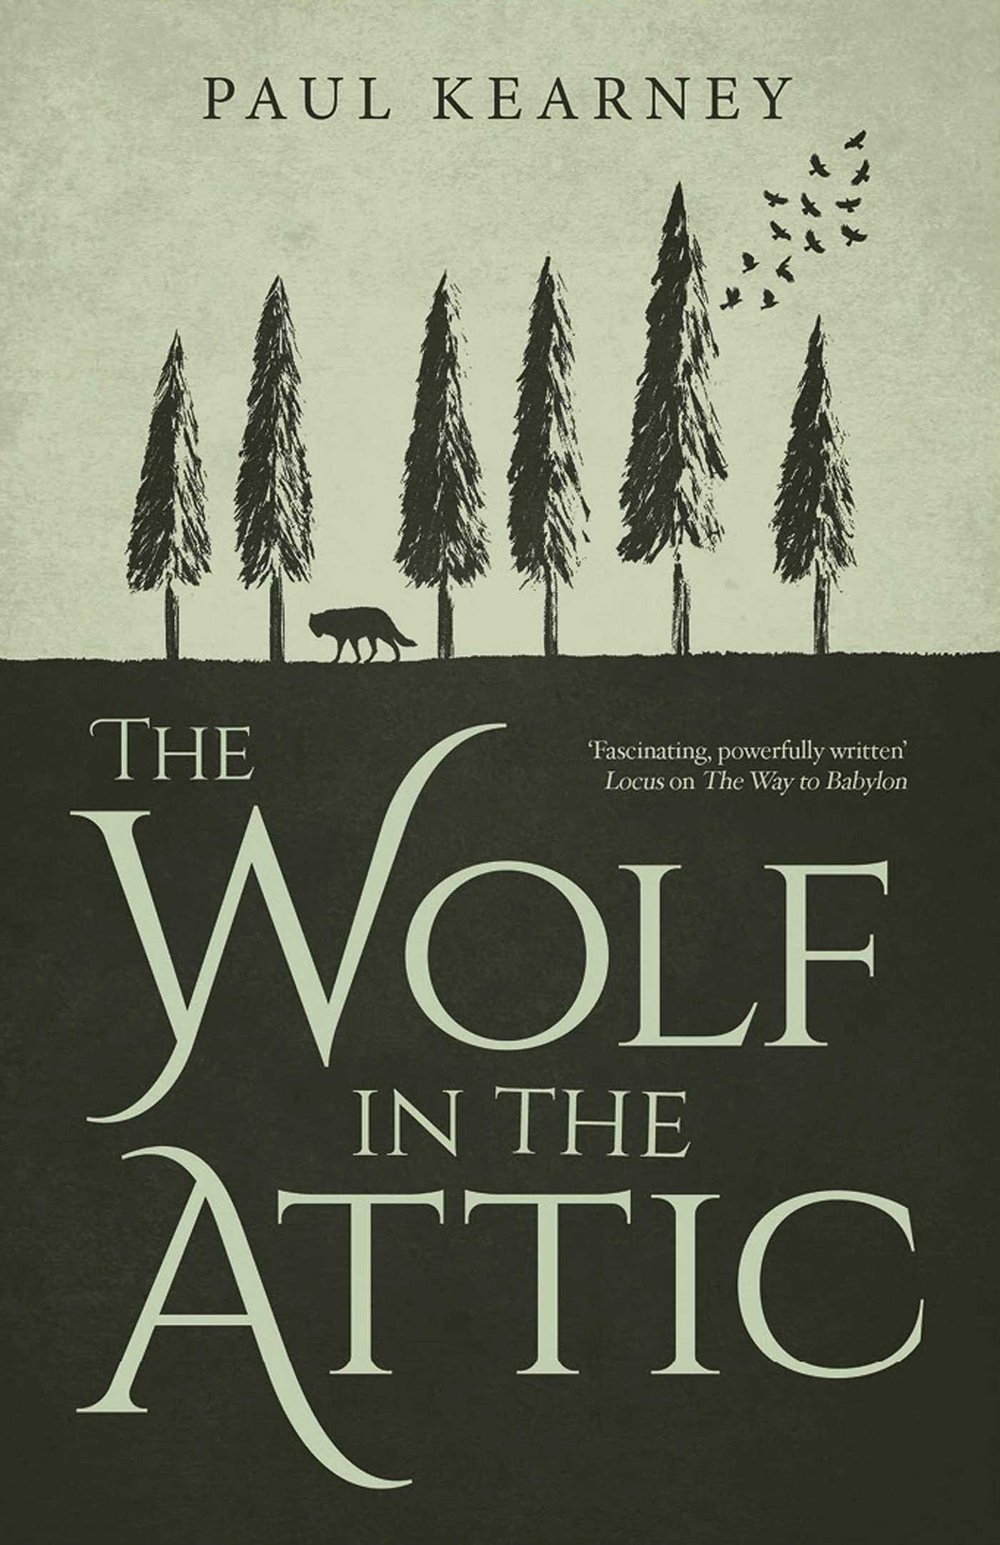 the-wolf-in-the-attic-9781781083628_hr.jpg